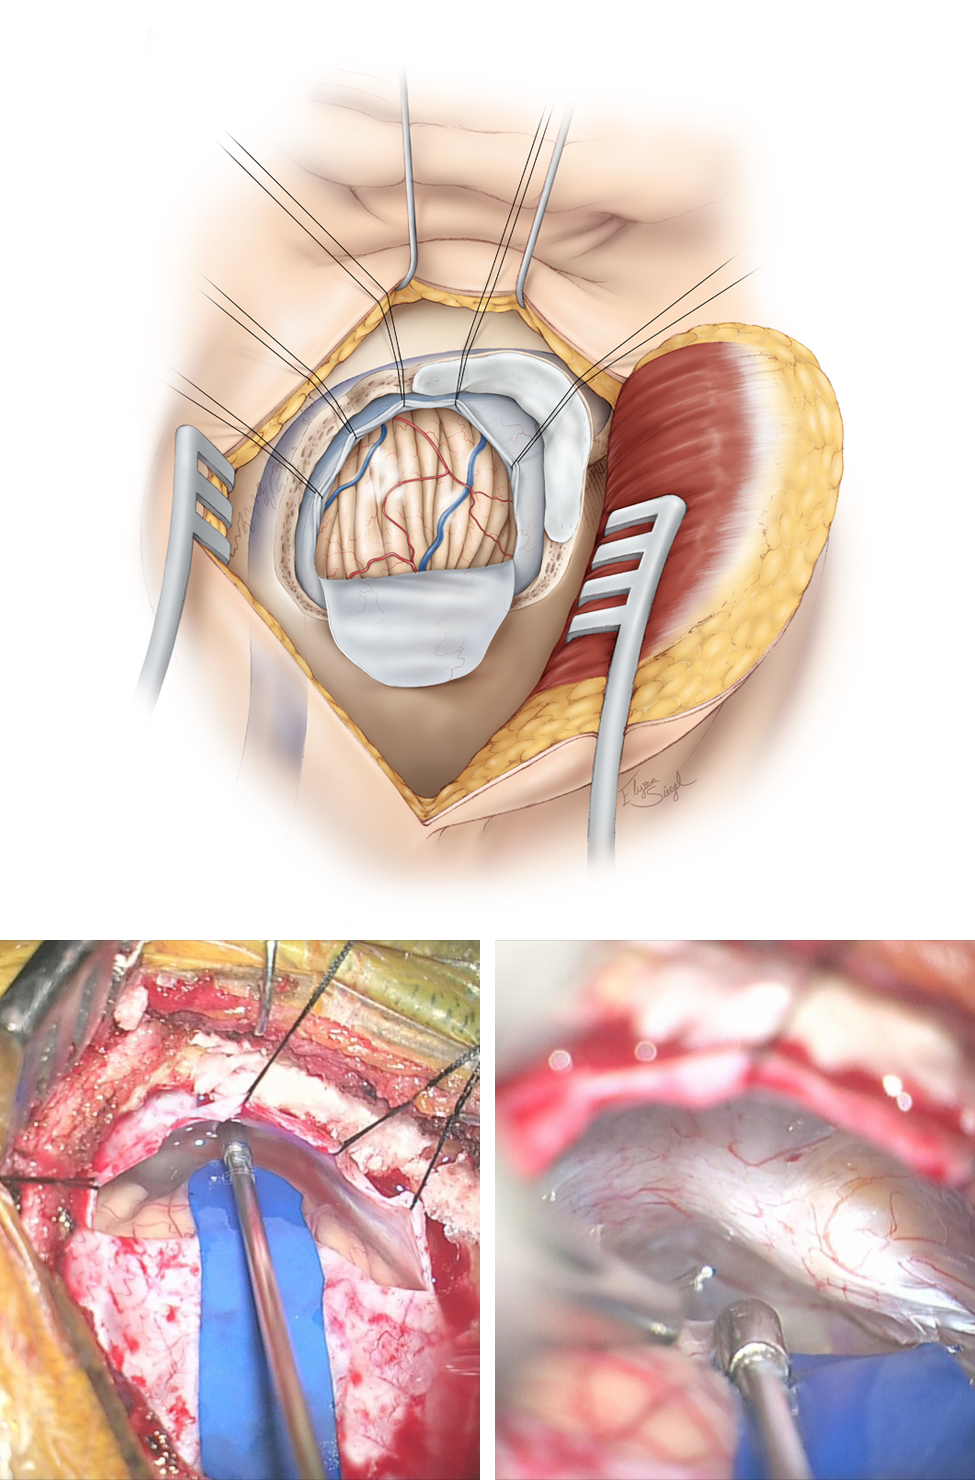 """Figure 7: Please note the use of fishhooks and a cerebellar retractor to effectively mobilize the scalp and expand the bone exposure. Additional bone over the transverse and sigmoid sinuses is removed using an air drill. Bone removal over the sigmoid sinus is important for its mobilization. All mastoid air cells are generously waxed. A dural incision is then made parallel and adjacent to the transverse and sigmoid sinuses (upper sketch). This style of dural opening prevents dessication of the dural flap from the heat of the microscope. The dural edges along the venous sinuses are tented up using retraction sutures to widen the operative corridor toward the CP angle by mobilizing the sigmoid sinus laterally, decreasing the need for cerebellar retraction. Further lumbar CSF drianage avoids cerebellar herniation through the craniotomy defect. The petrous-tentorial junction is pursued; a piece of rubber glove (""""rubber dam"""") is used to allow the instruments to glide over the cerebellum (lower row of images)."""